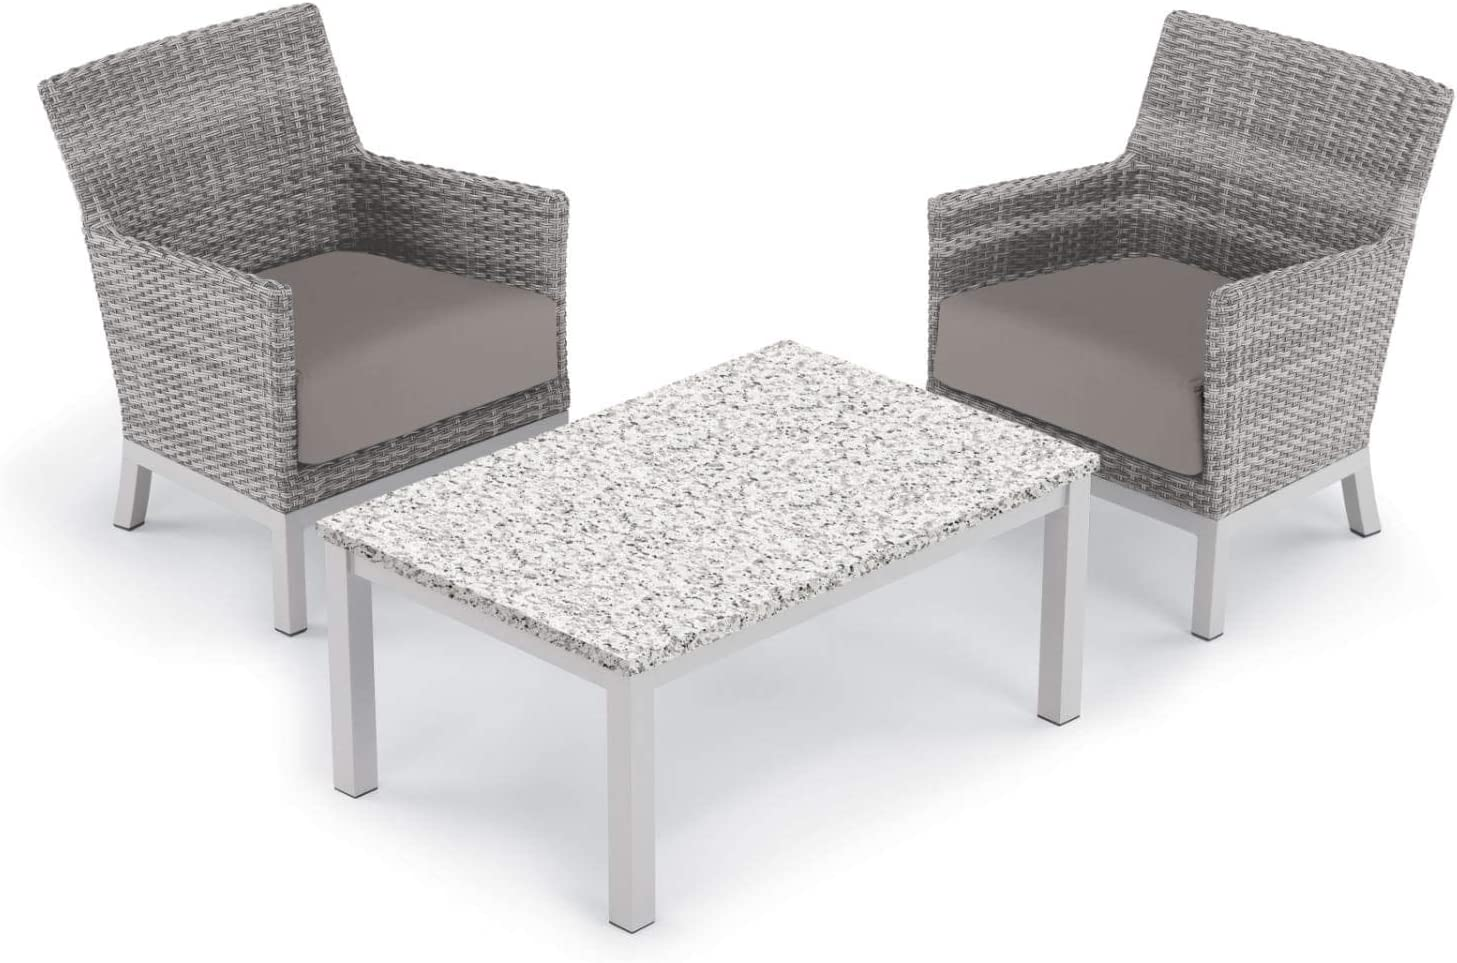 Oxford Garden 5562 Argento & Travira Furniture Set, Powder Coat Flint